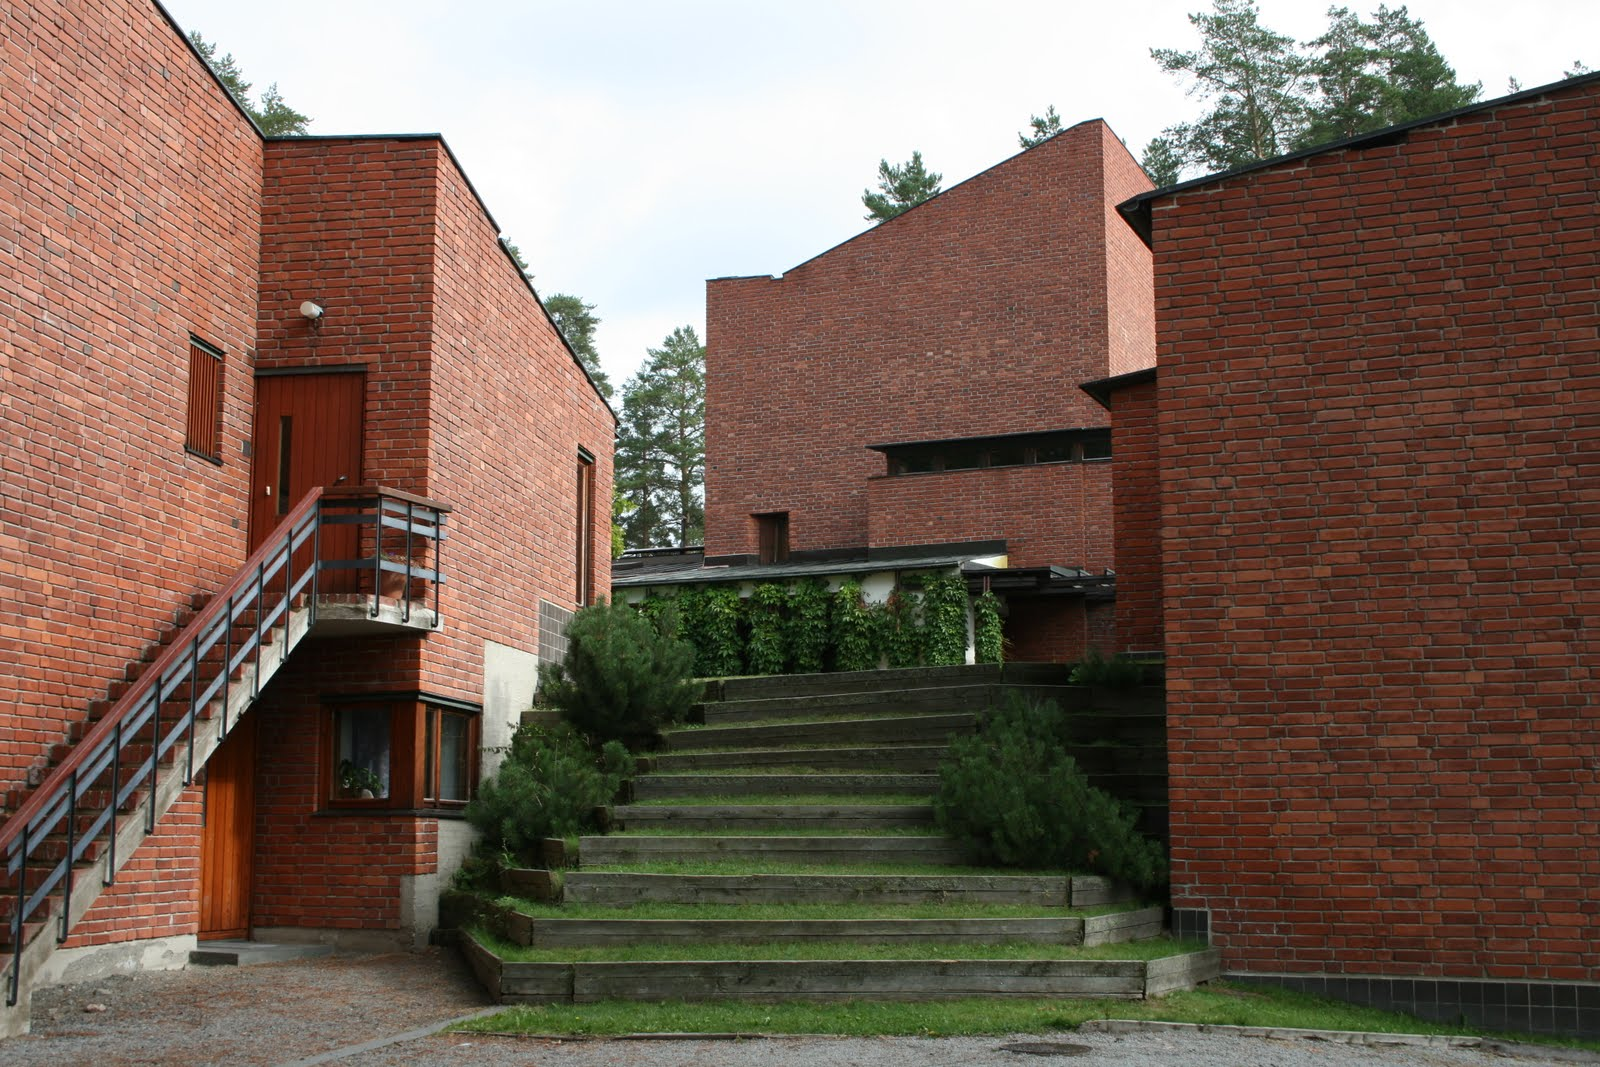 Saynatsalo Town Hall Courtyard